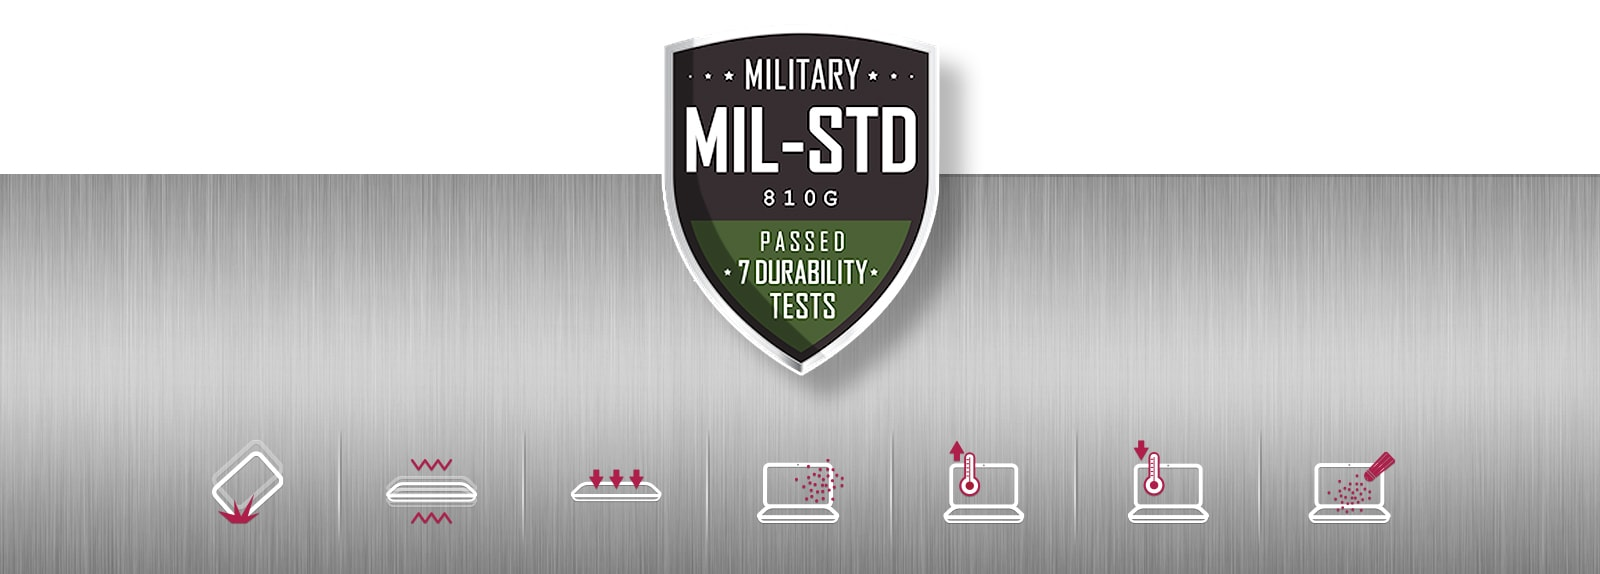 Image of a Military Standard Logo Shield